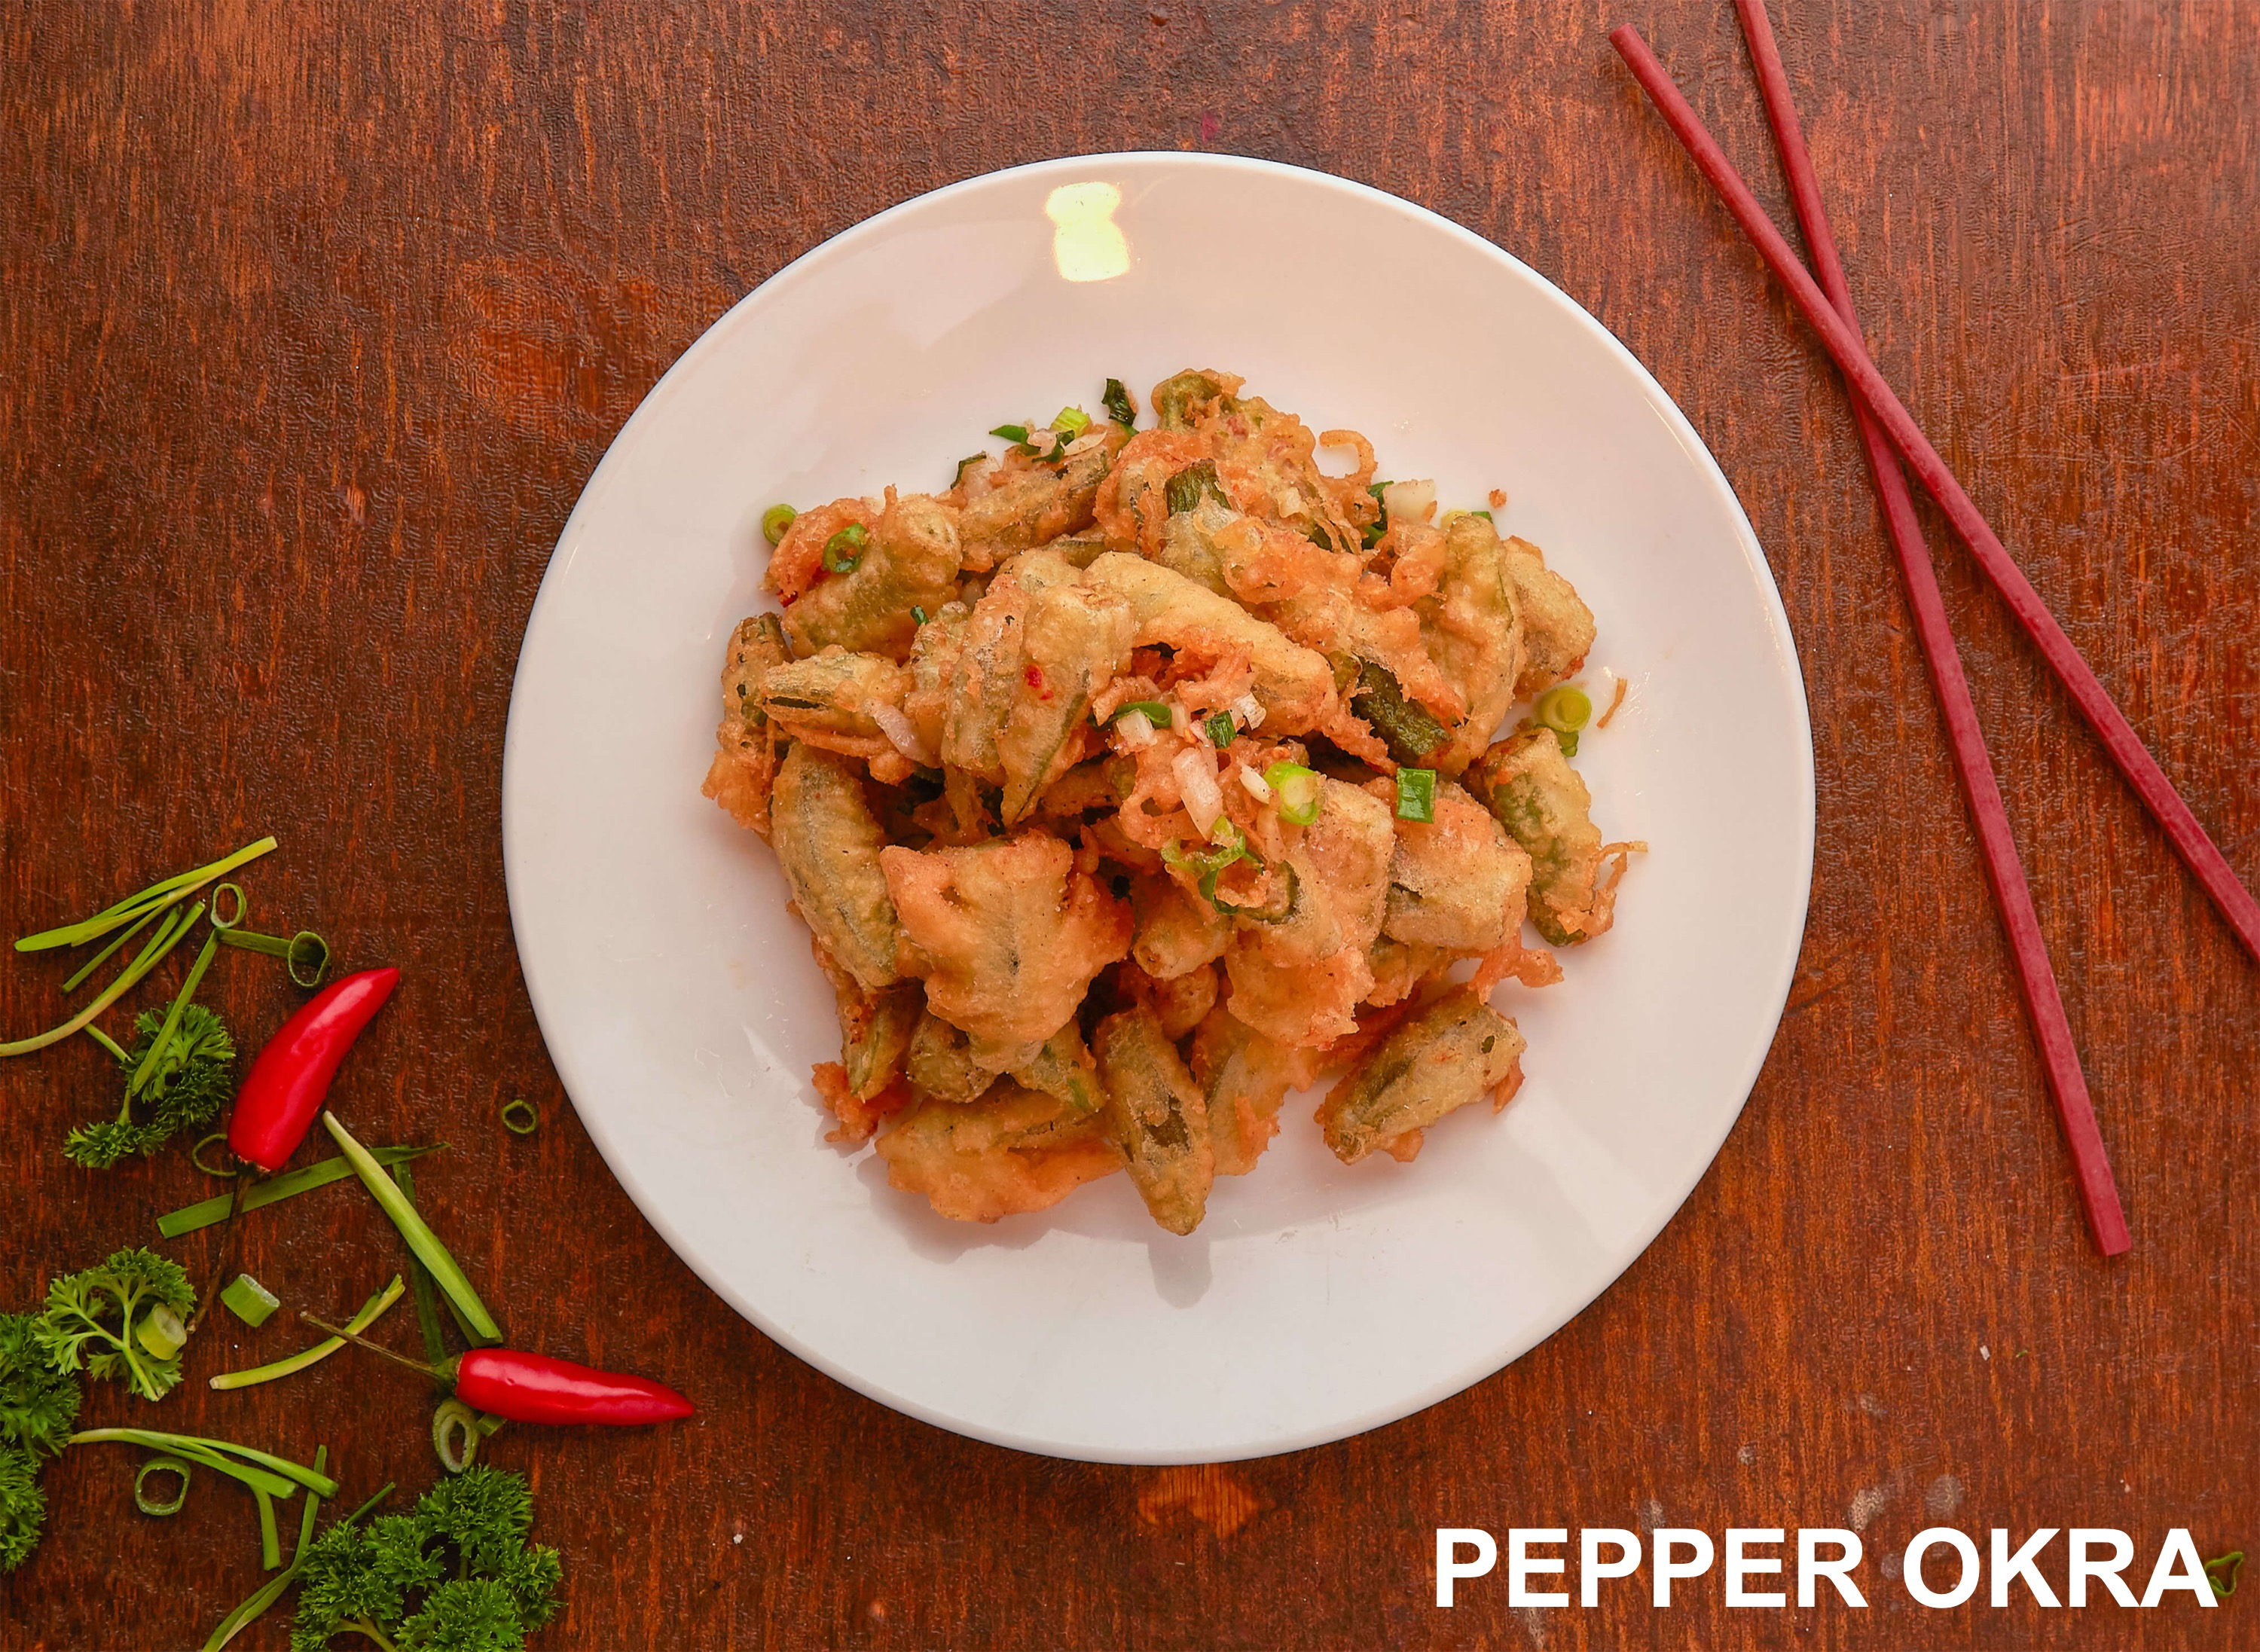 PepperOkra_ChintaKechil31681_edited